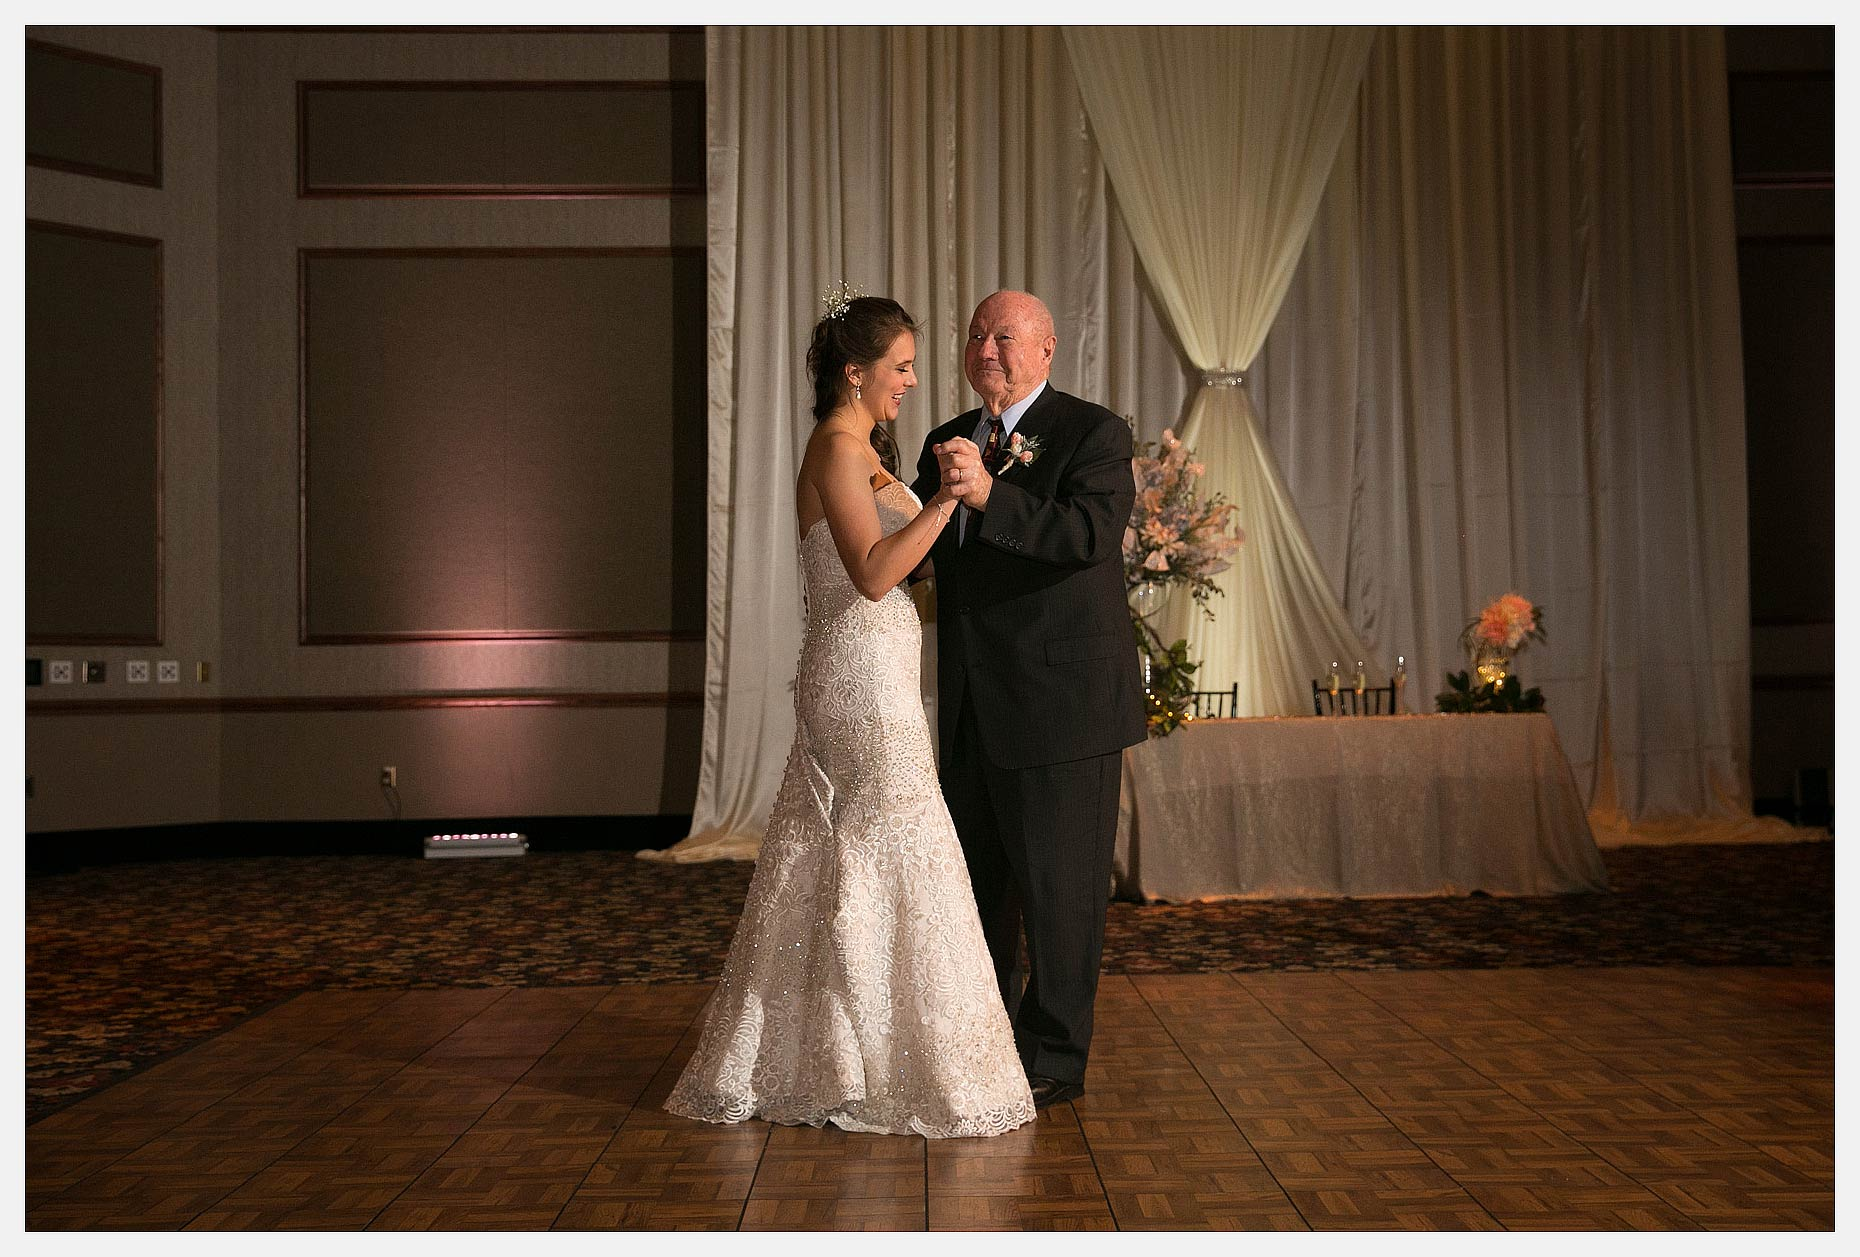 Madison-Carver-Wedding-by-Stephen-Masker-Photography-0115